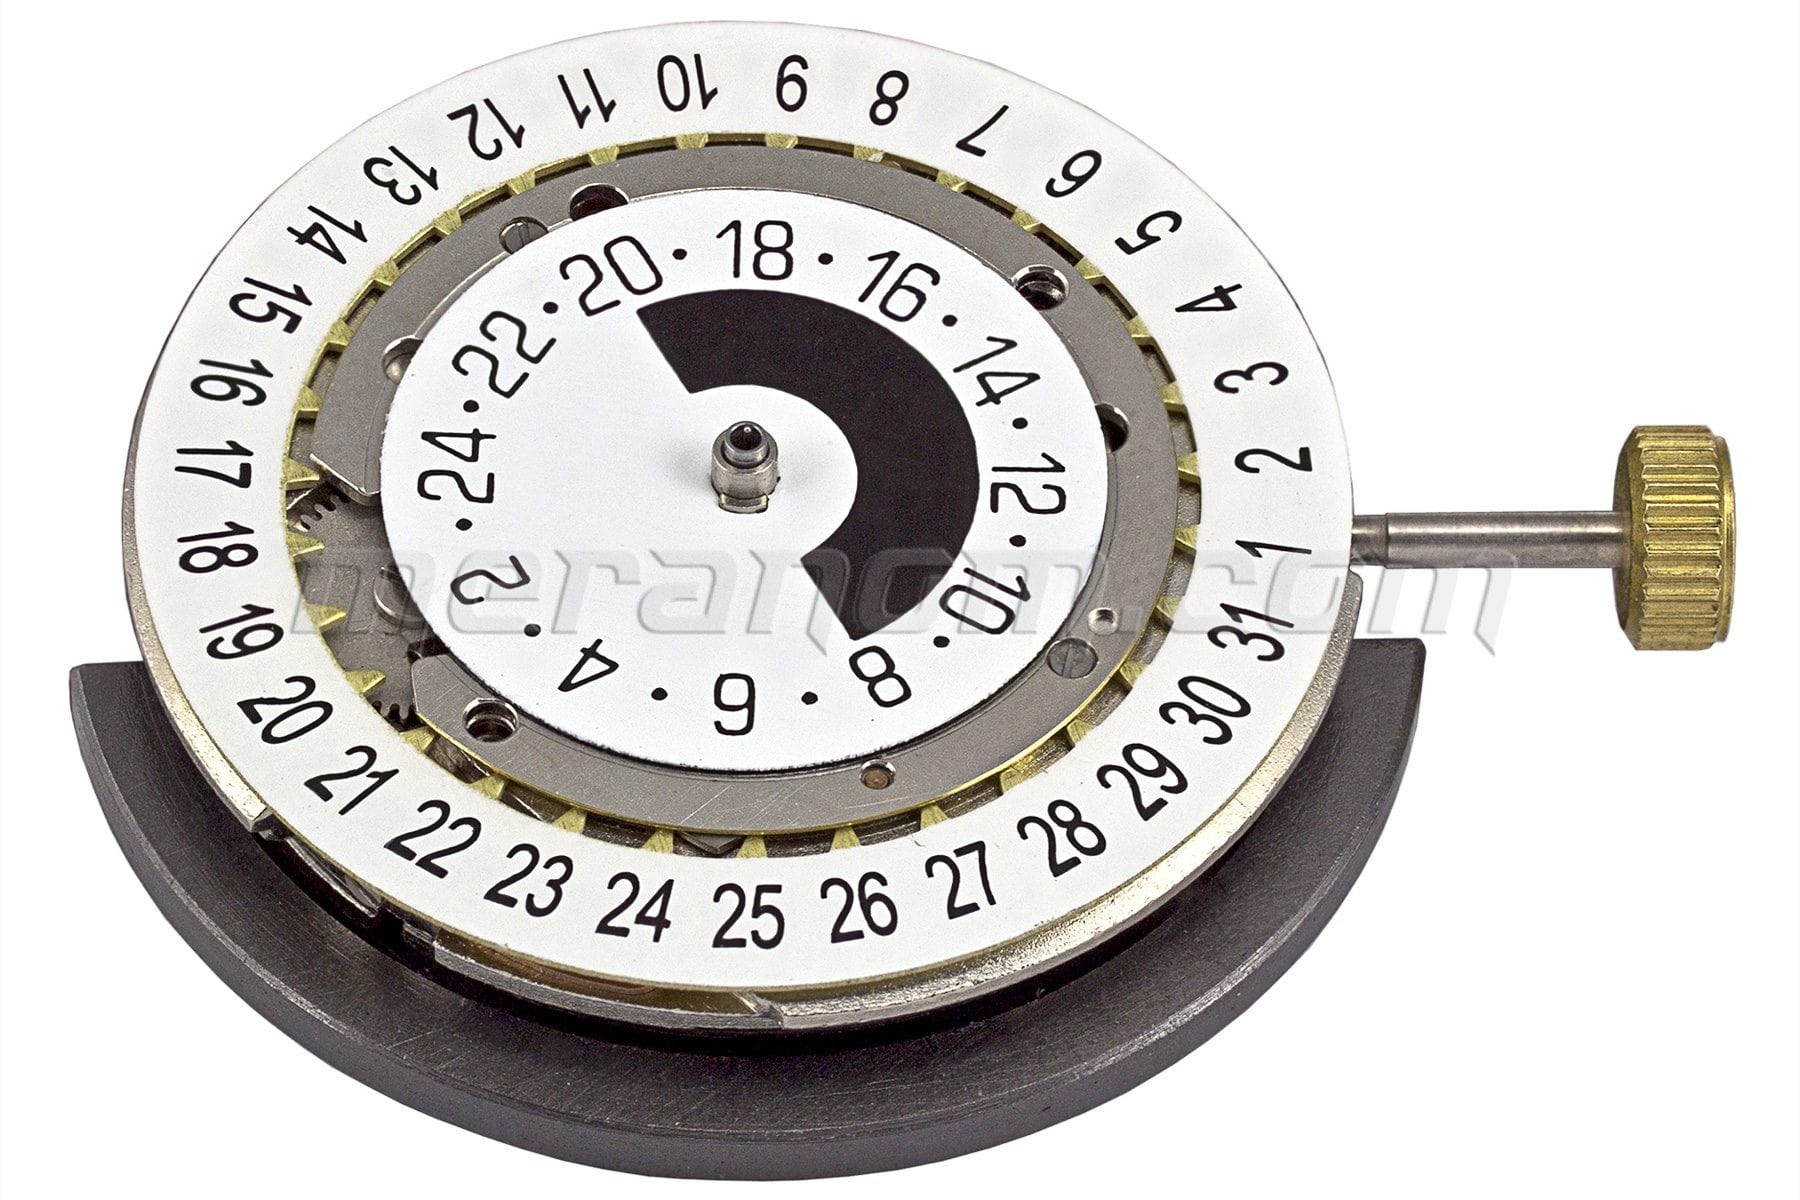 Vostok Watch 2432 movement